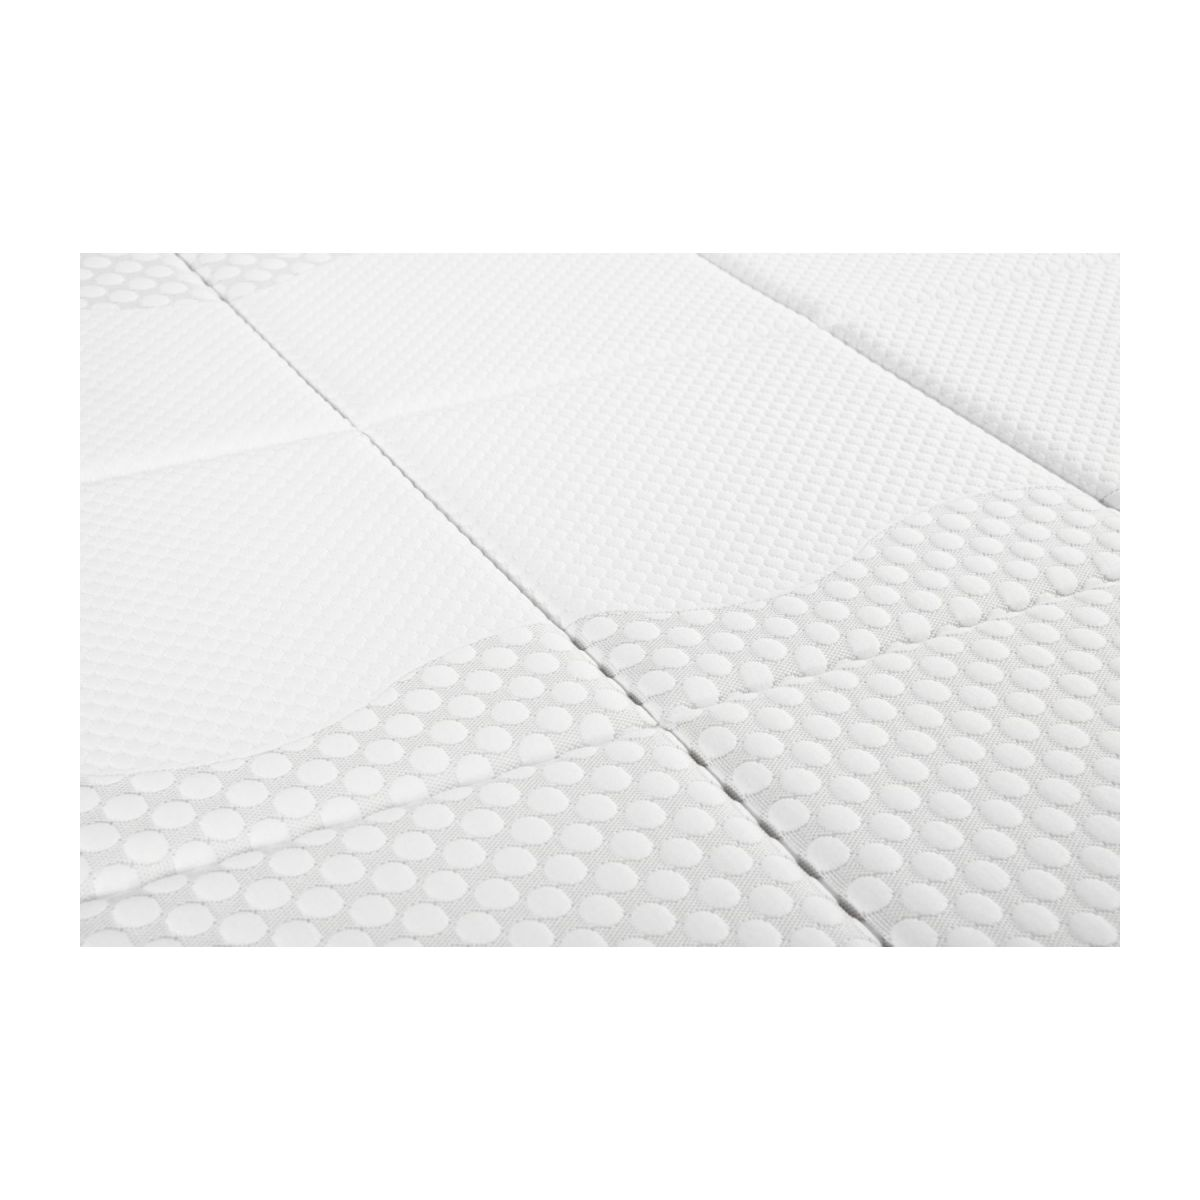 Foam mattress, width 24 cm, 90x200cm - firm support n°4